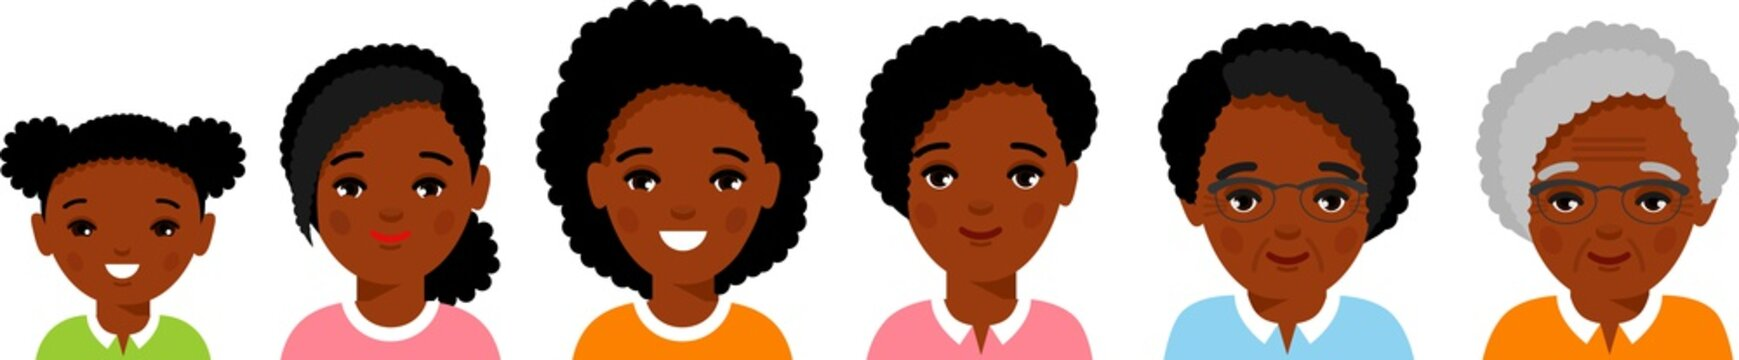 Set of african american age group avatars woman in colorful style. All age group of african american female. Stages of development people - infancy, childhood, youth, maturity, old age.